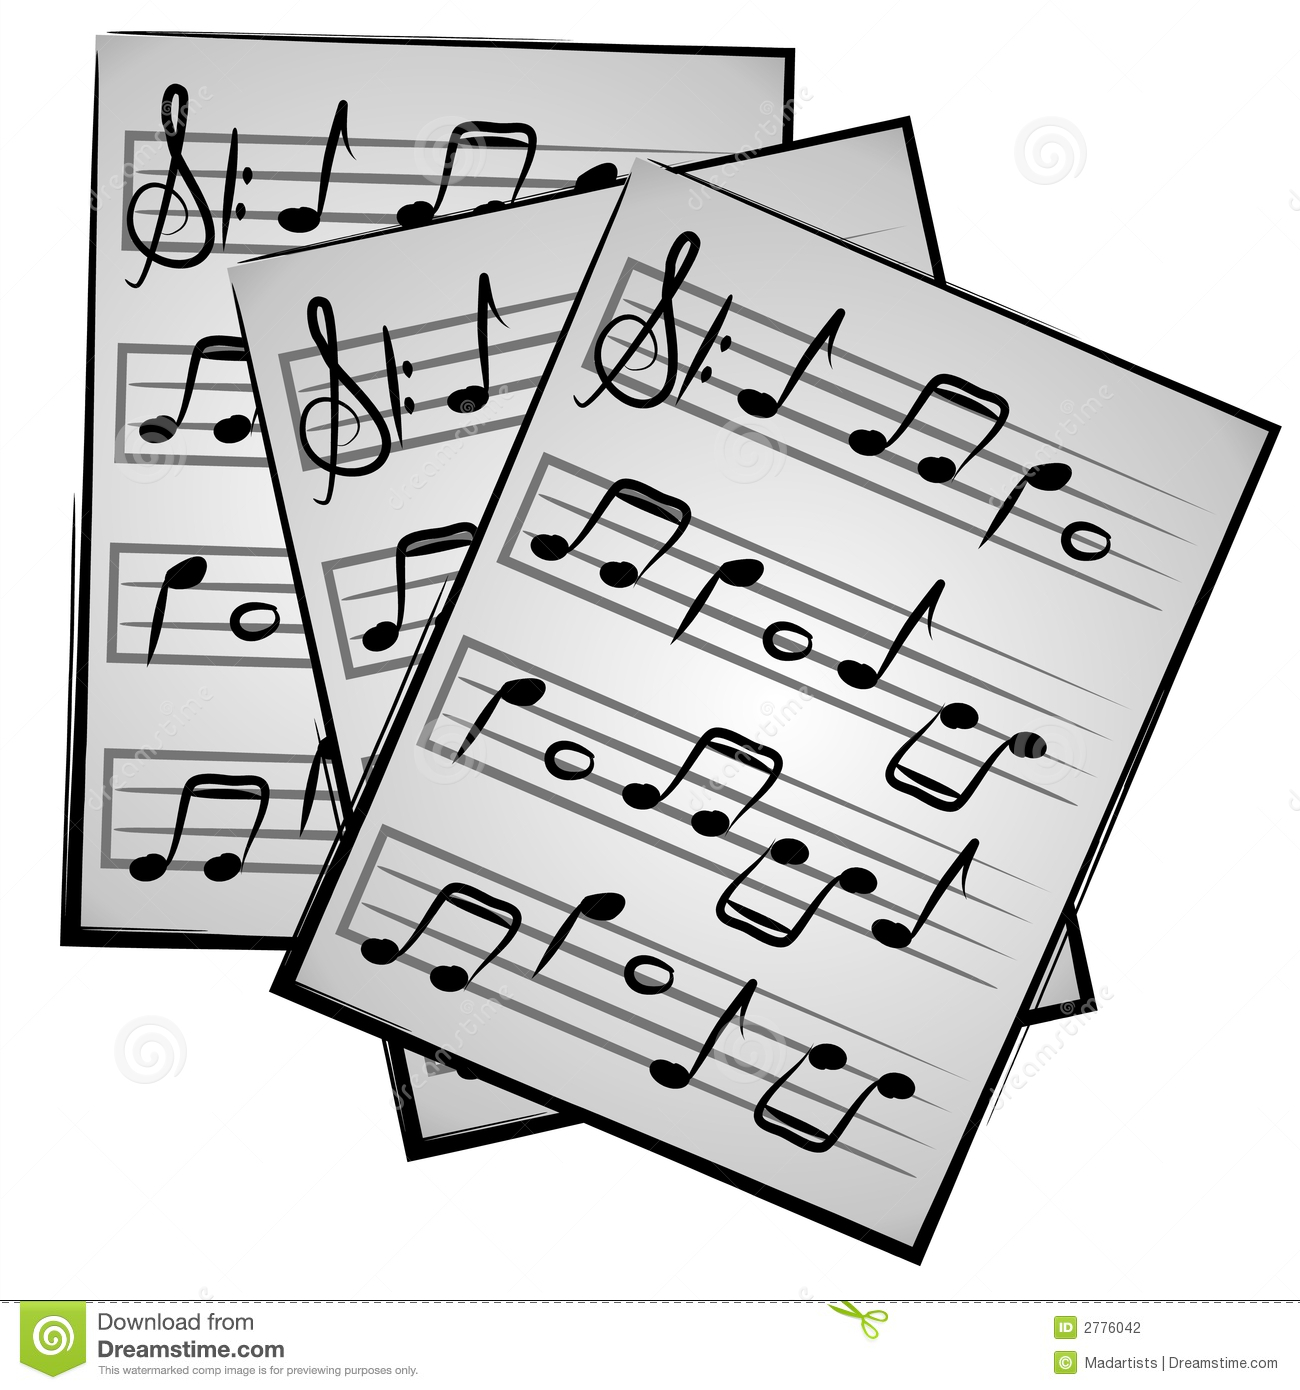 An illustration of paper music sheets on a white isolated background.